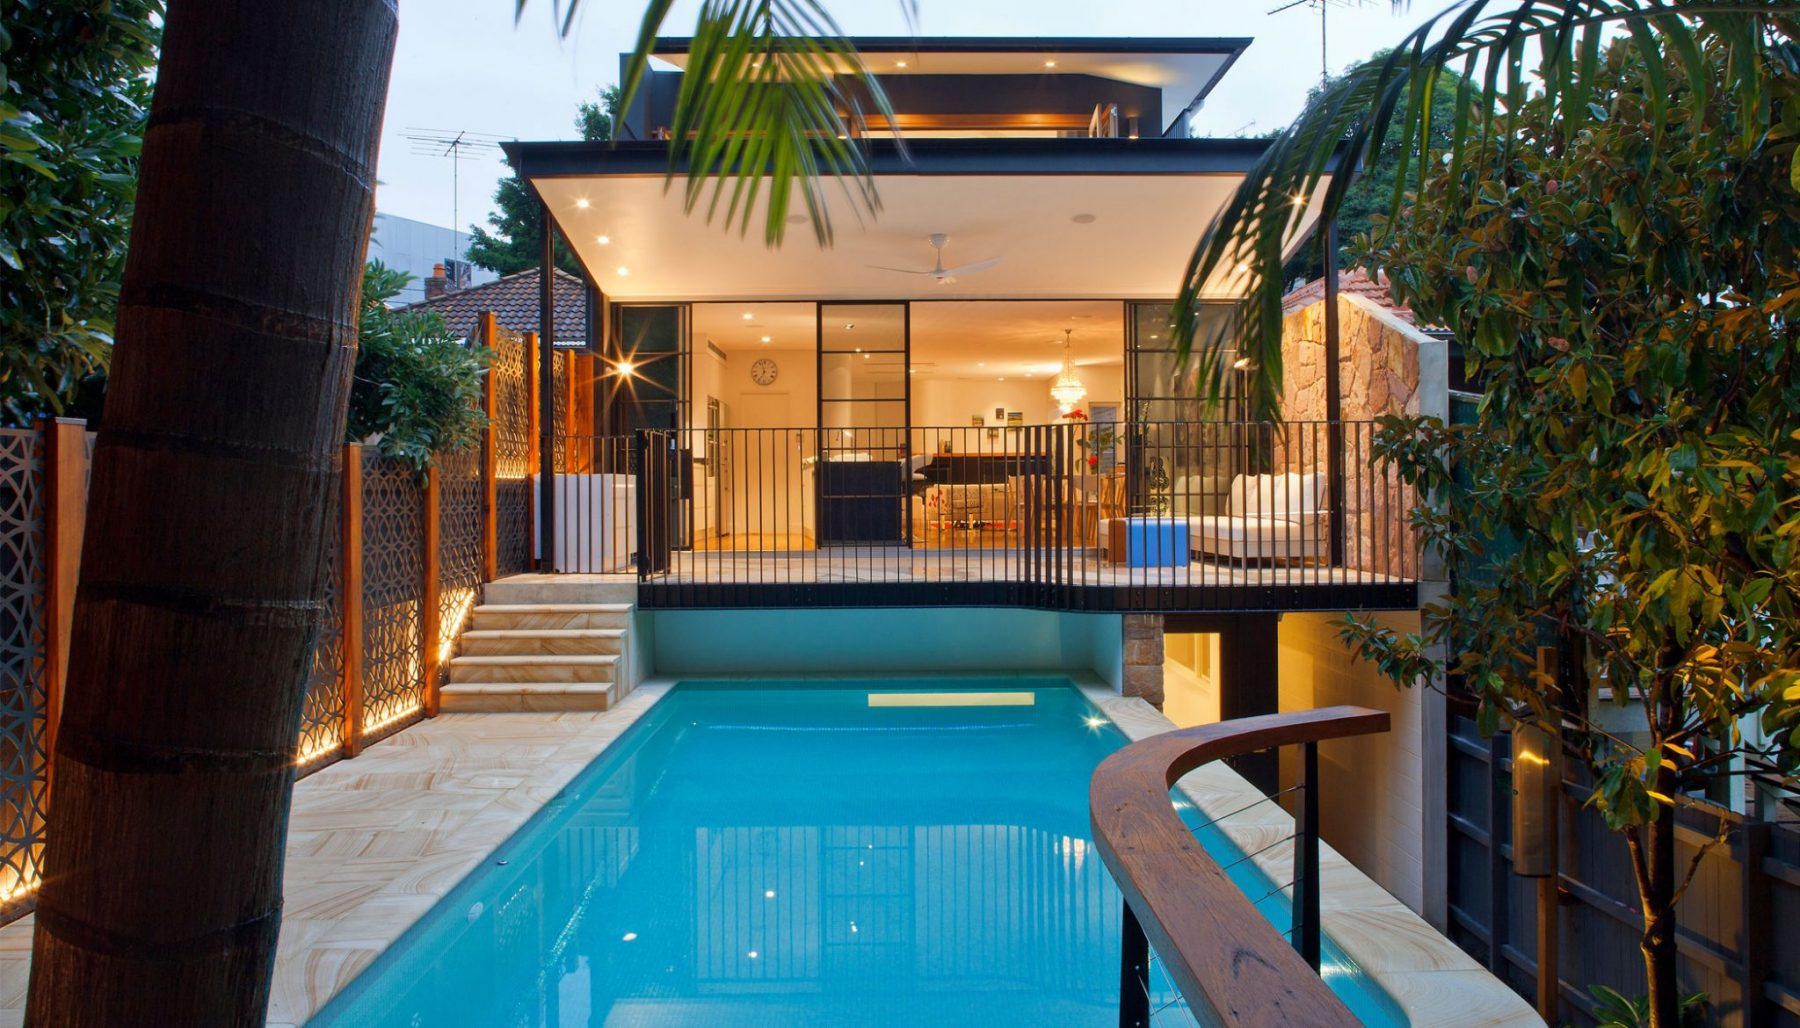 "alt=""SMARTHOMEWORKS - smarthome home automation Sydney - House Back yard view"""